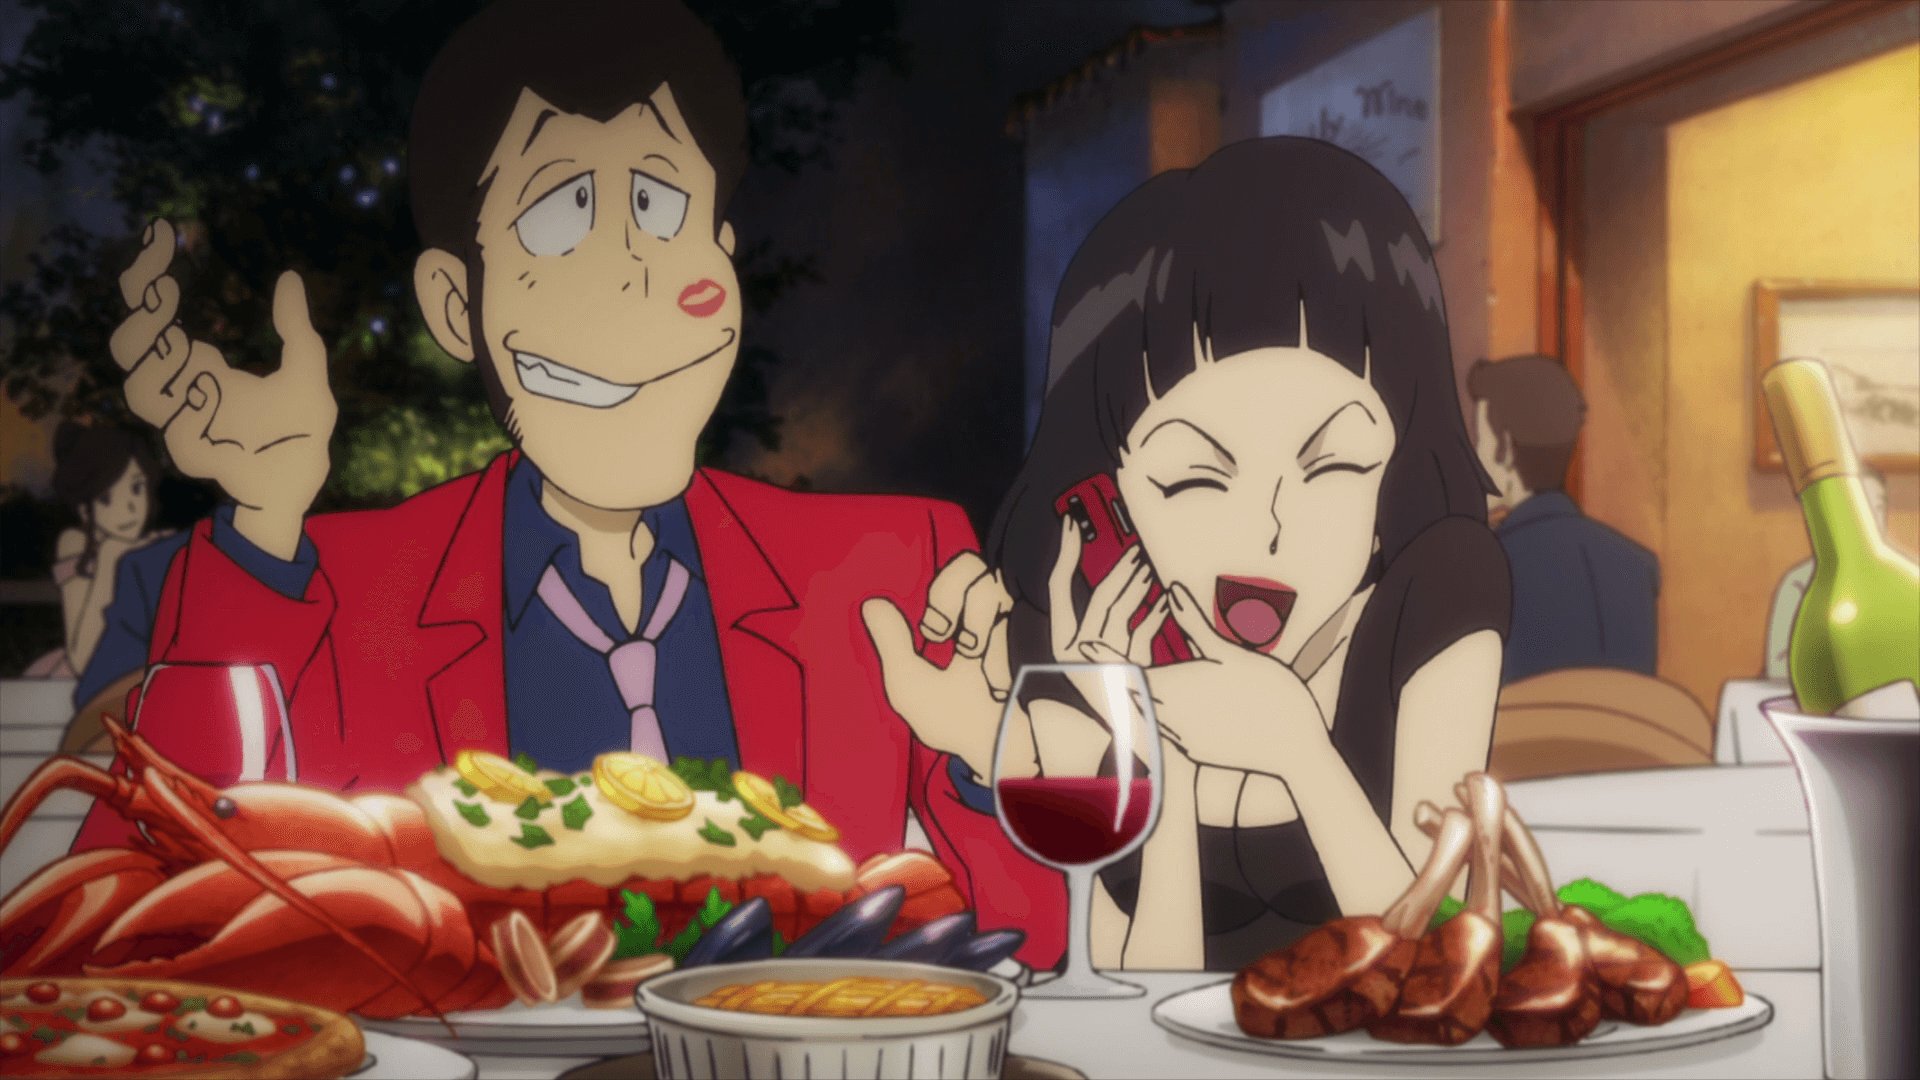 Lupin III Part V 12 001 16050 - Lupin III Part V Episode 12 Subtitle Indonesia